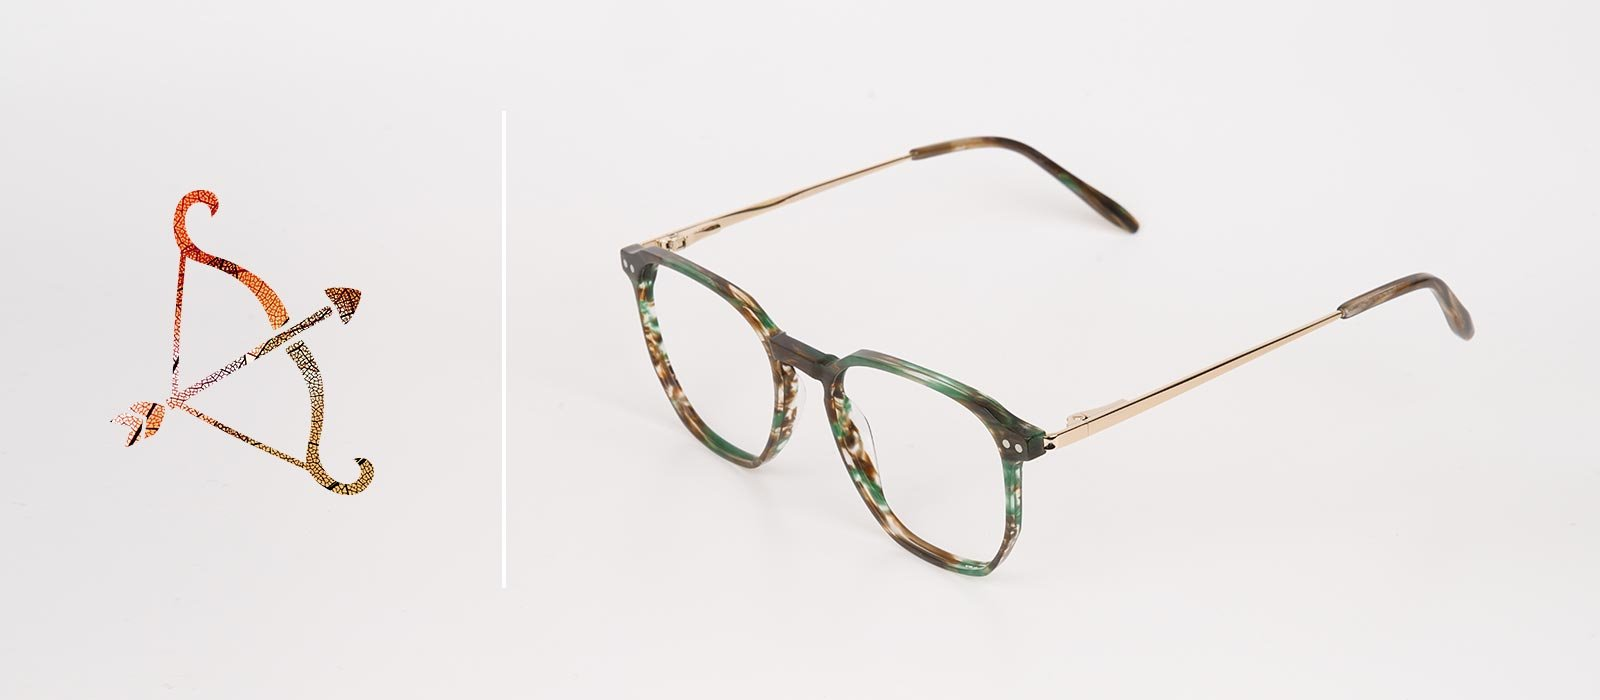 2019 eyewear trends with sagittarius zodiac sign